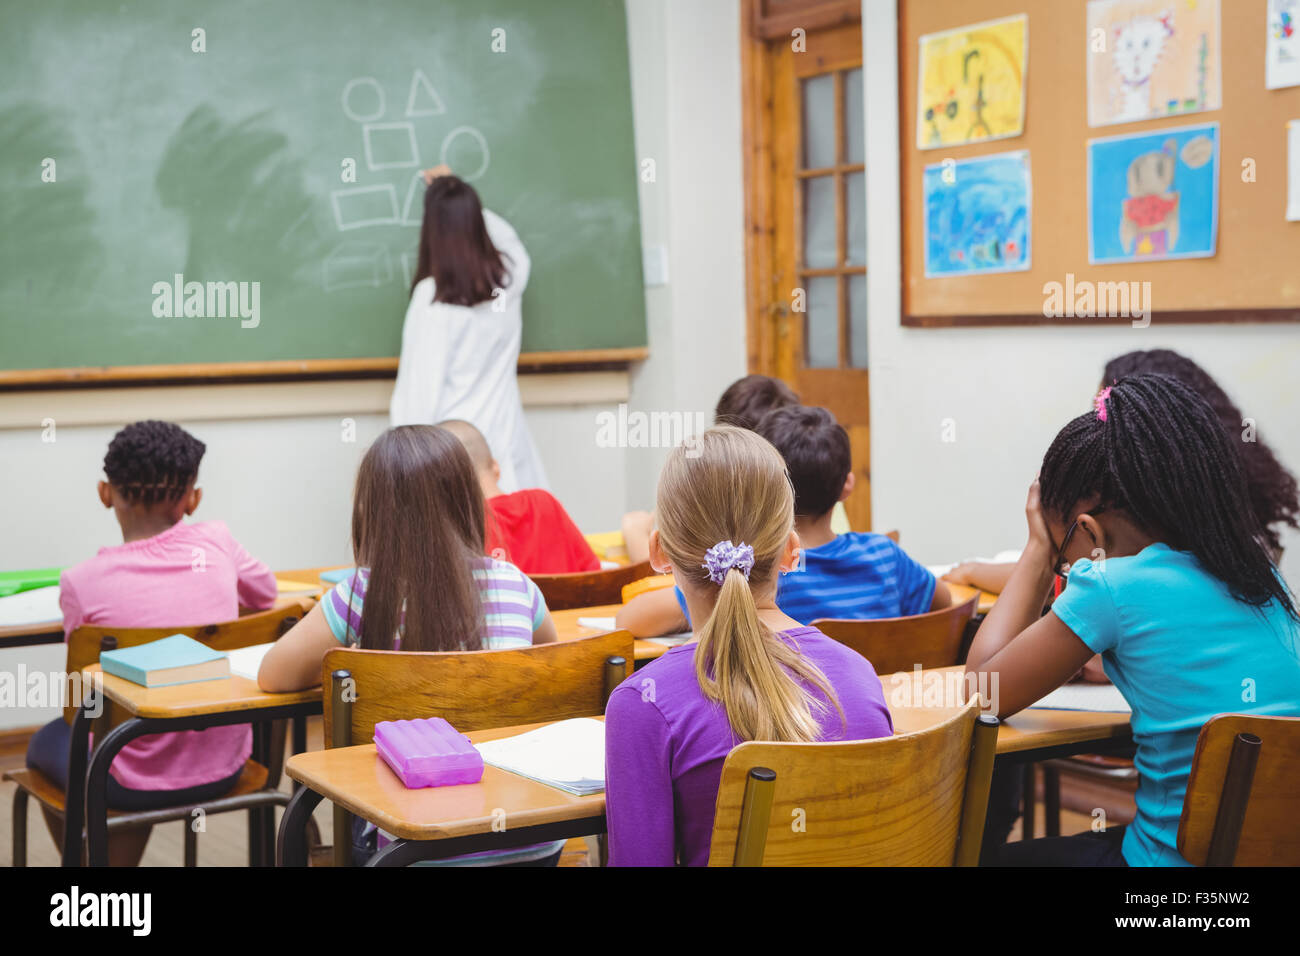 Students paying attention to the teacher - Stock Image